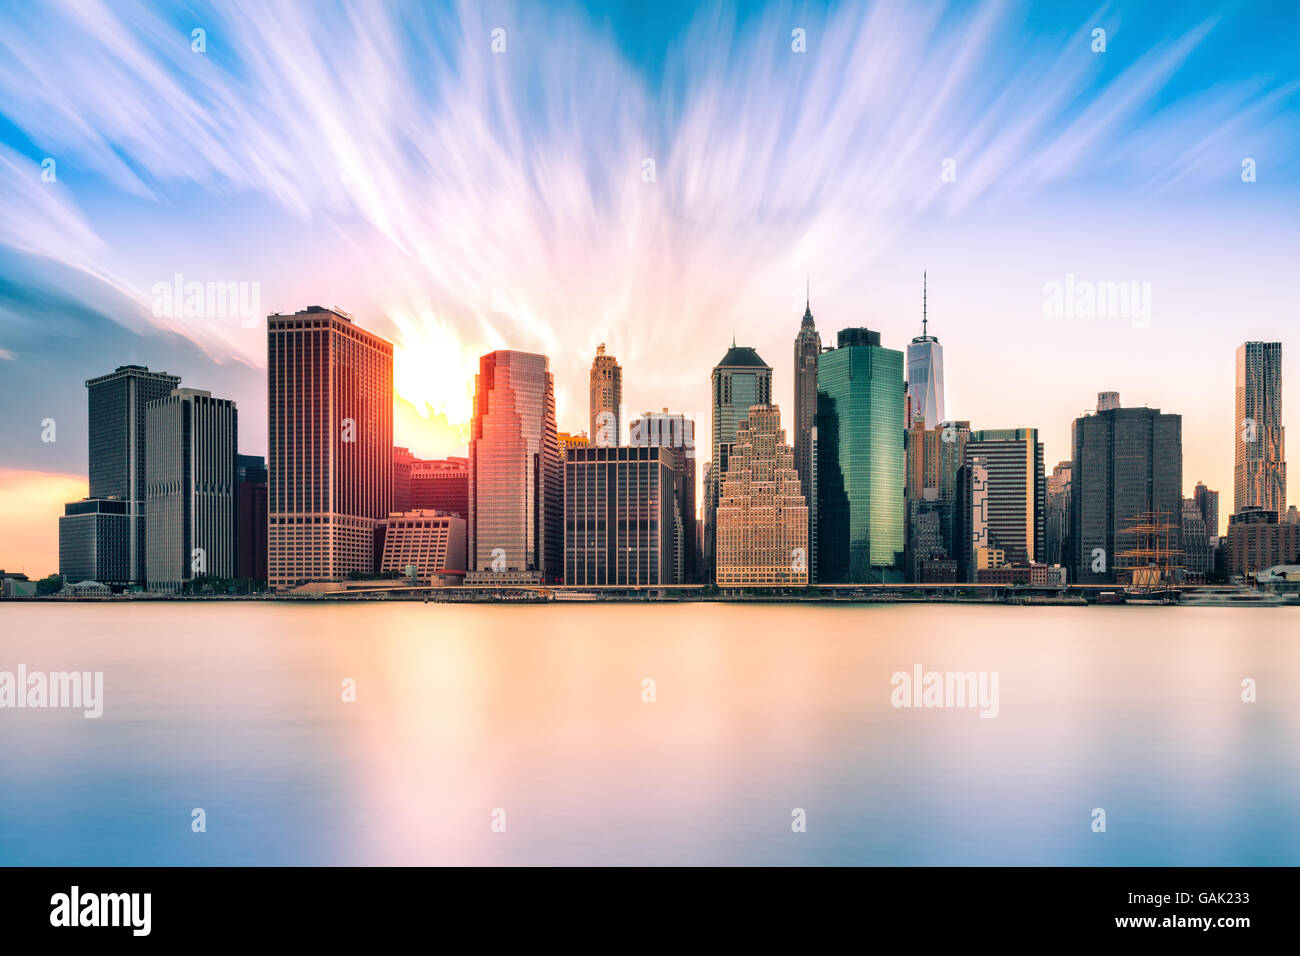 Financial District at sunset, in New York City - Stock Image